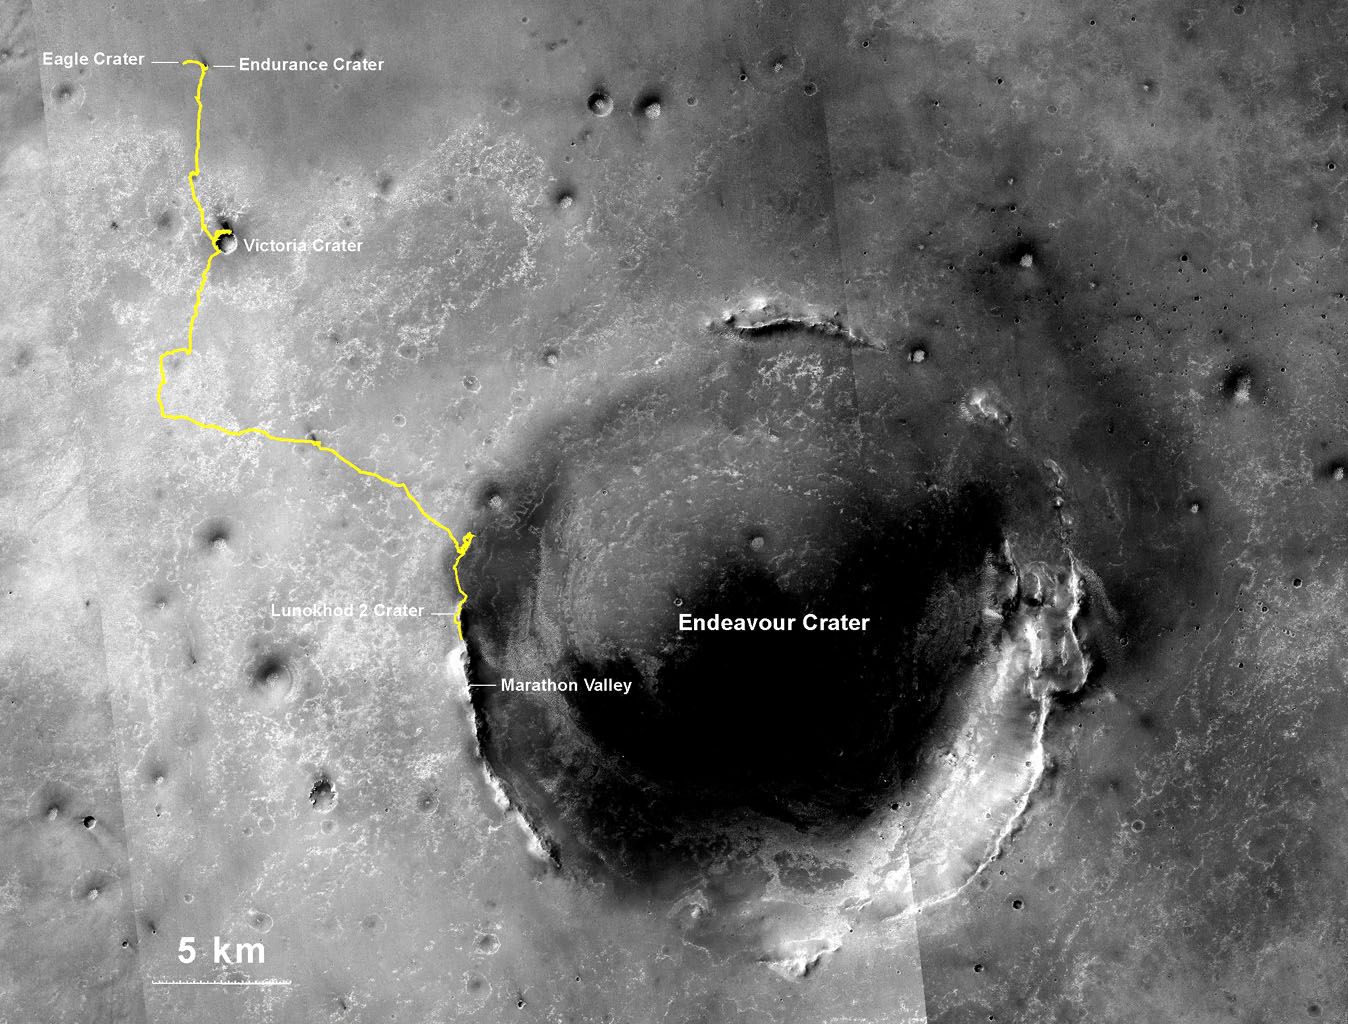 NASA's Opportunity rover, working on Mars since January 2004, passed 25 miles of total driving on the July 27, 2014. The gold line on this map shows Opportunity's route from the landing site inside Eagle Crater, in upper left.